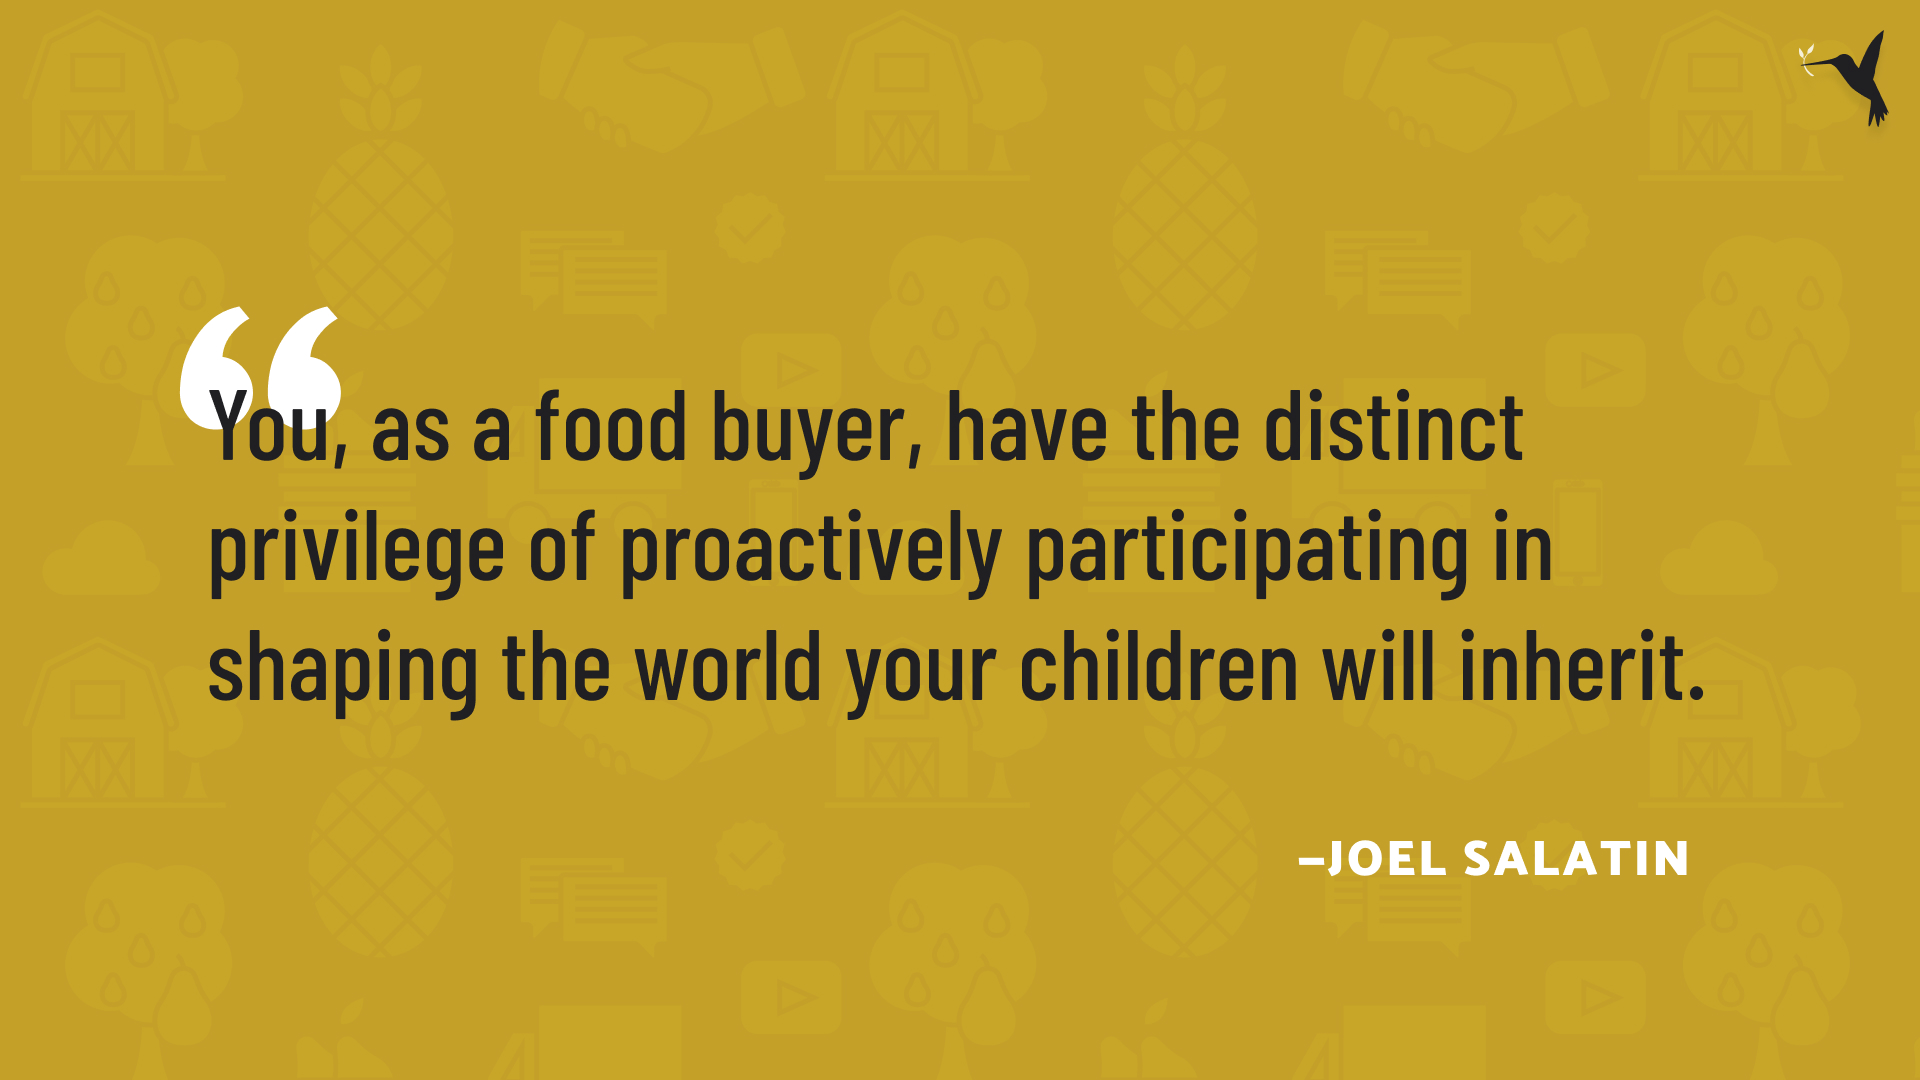 """""""You, as a food buyer, have the distinct privilege of proactively participating in shaping the world your children will inherit."""" — Joel Salatin"""